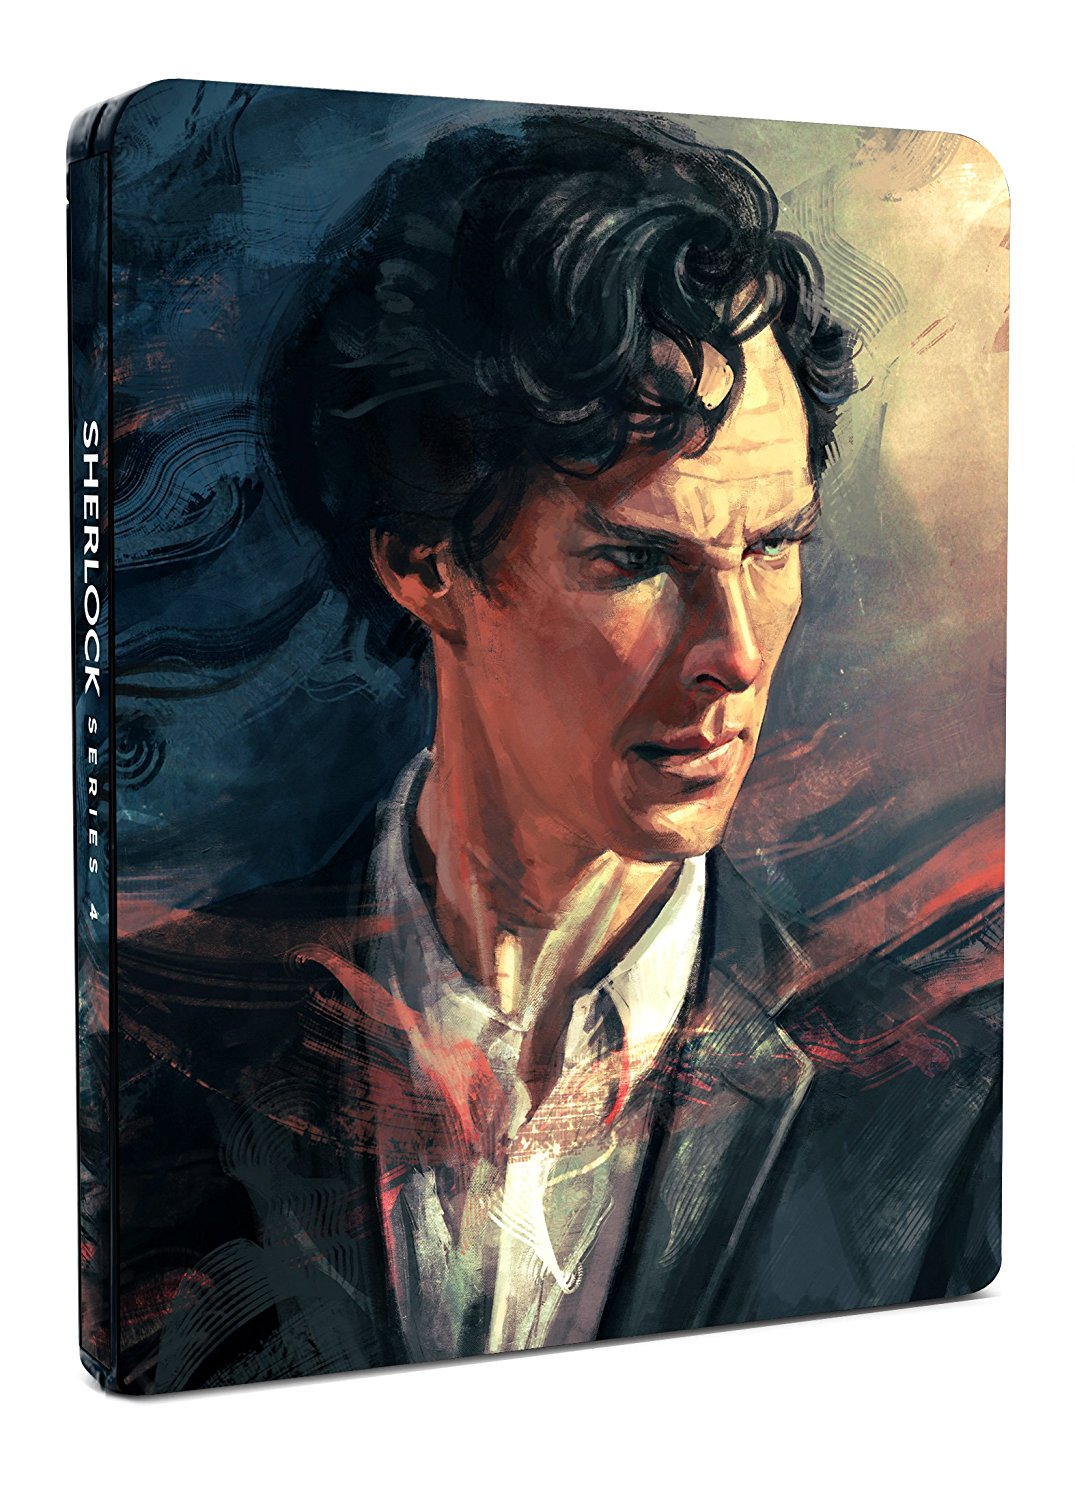 sherlock-saison-4-steelbook-uk-1